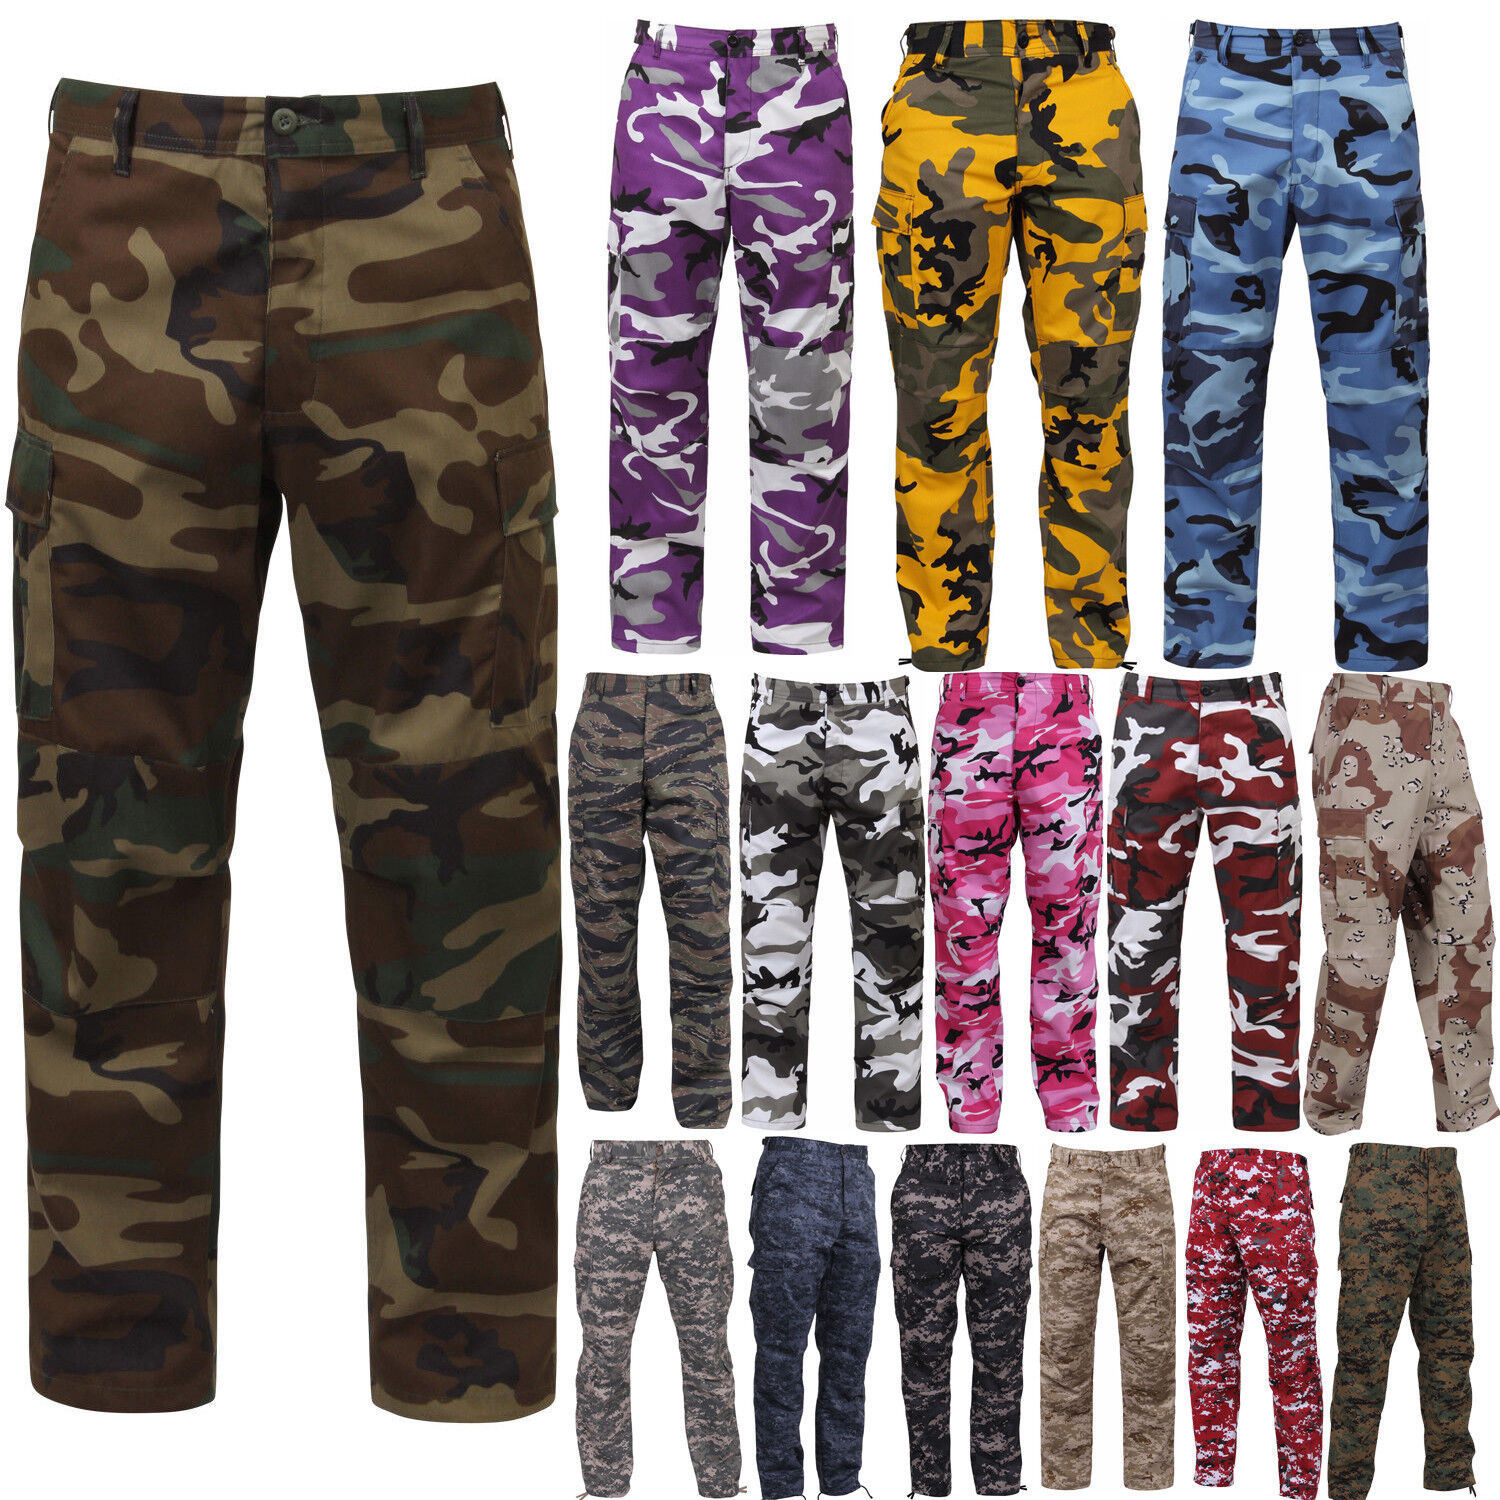 Tactical BDU Pants, Camo Cargo Uniform 6-Pocket, Camouflage